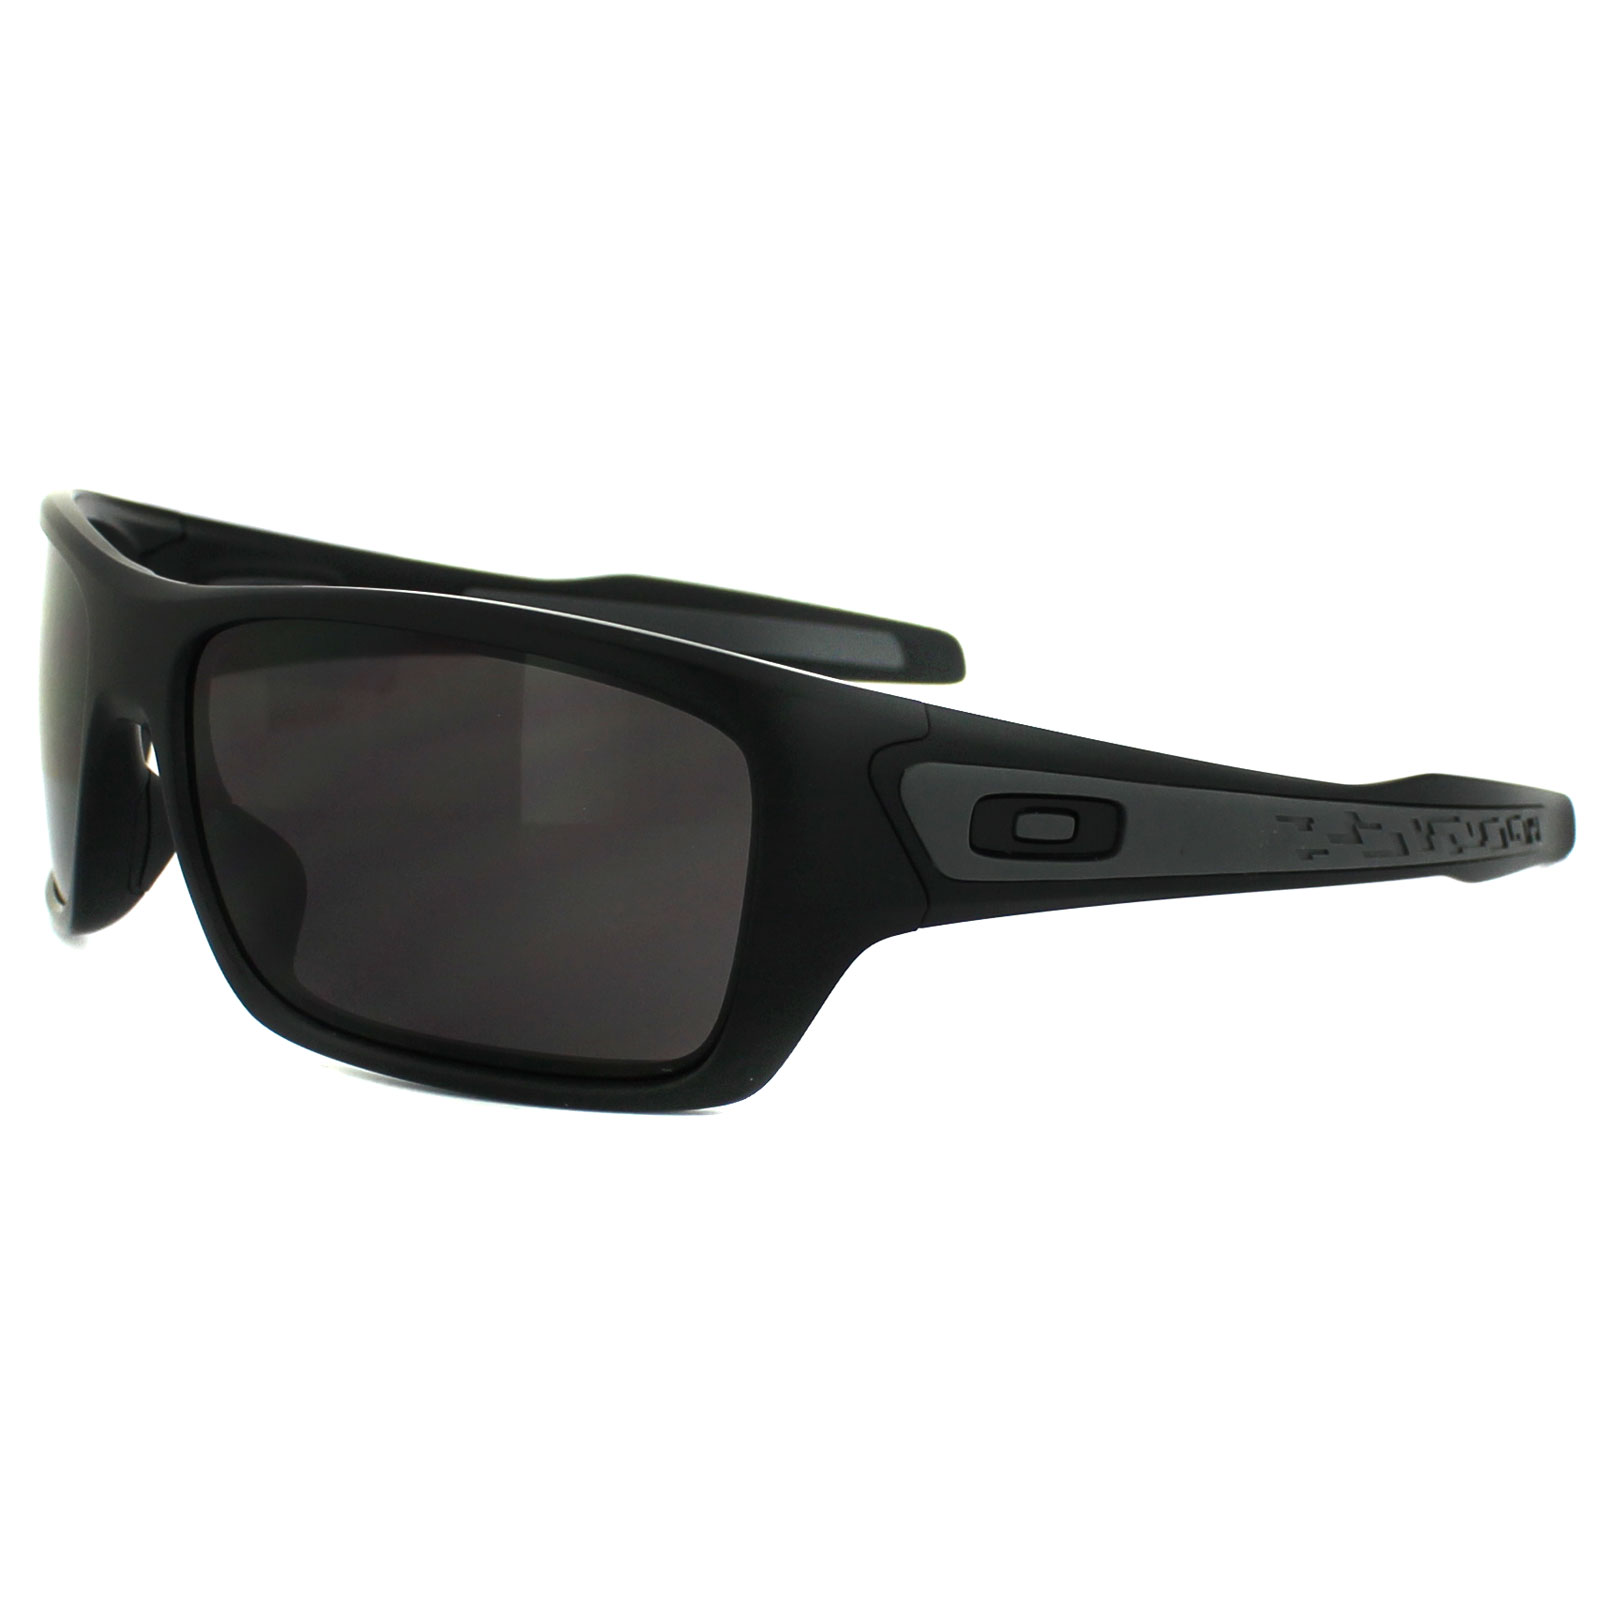 Cheap Oakley Turbine Sunglasses Discounted Sunglasses